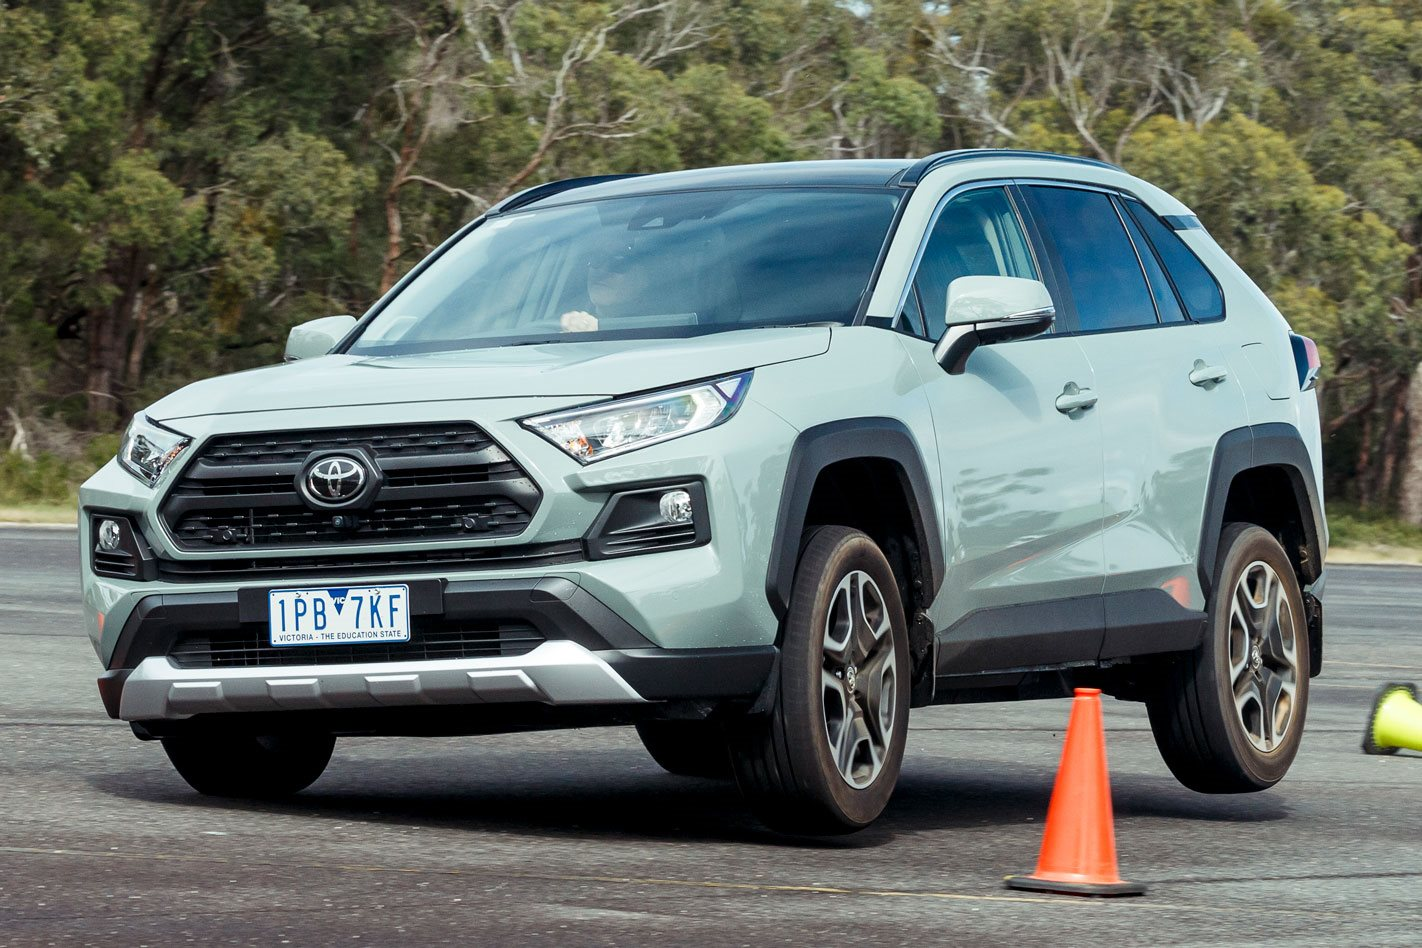 Latest Toyota RAV4 'fails' moose test